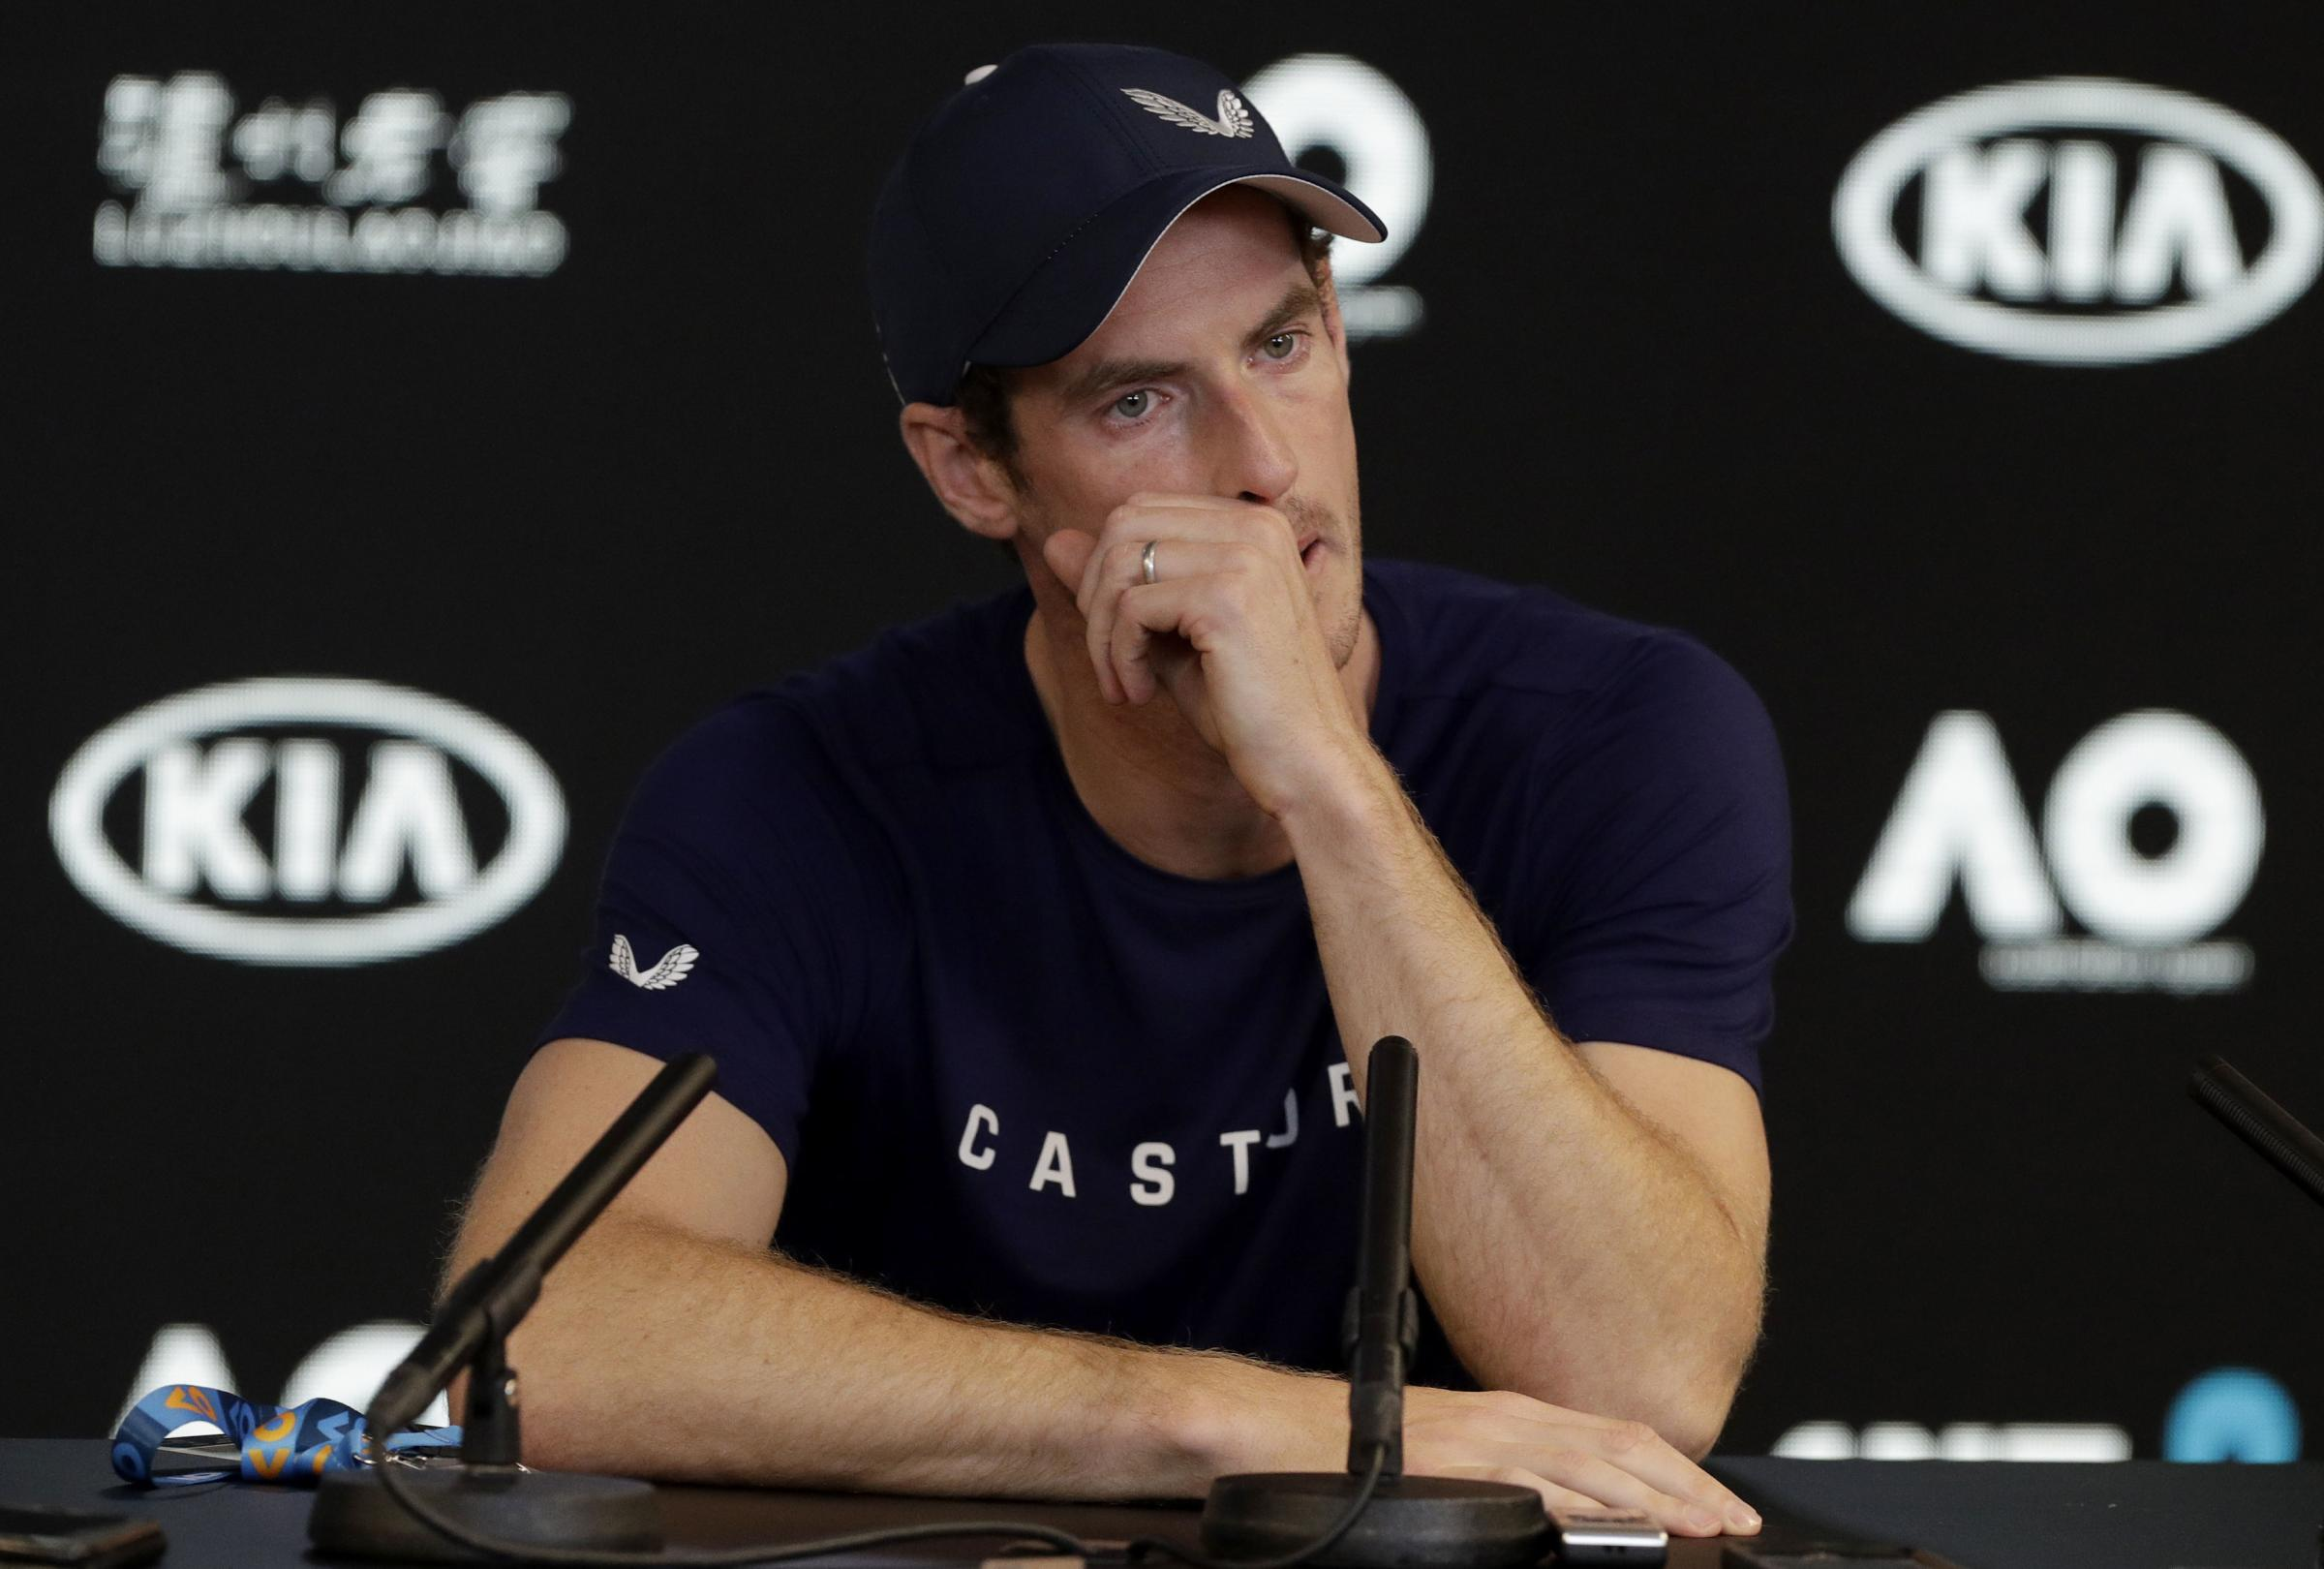 An emotional Andy Murray revealed his plans ahead of the Australian Open